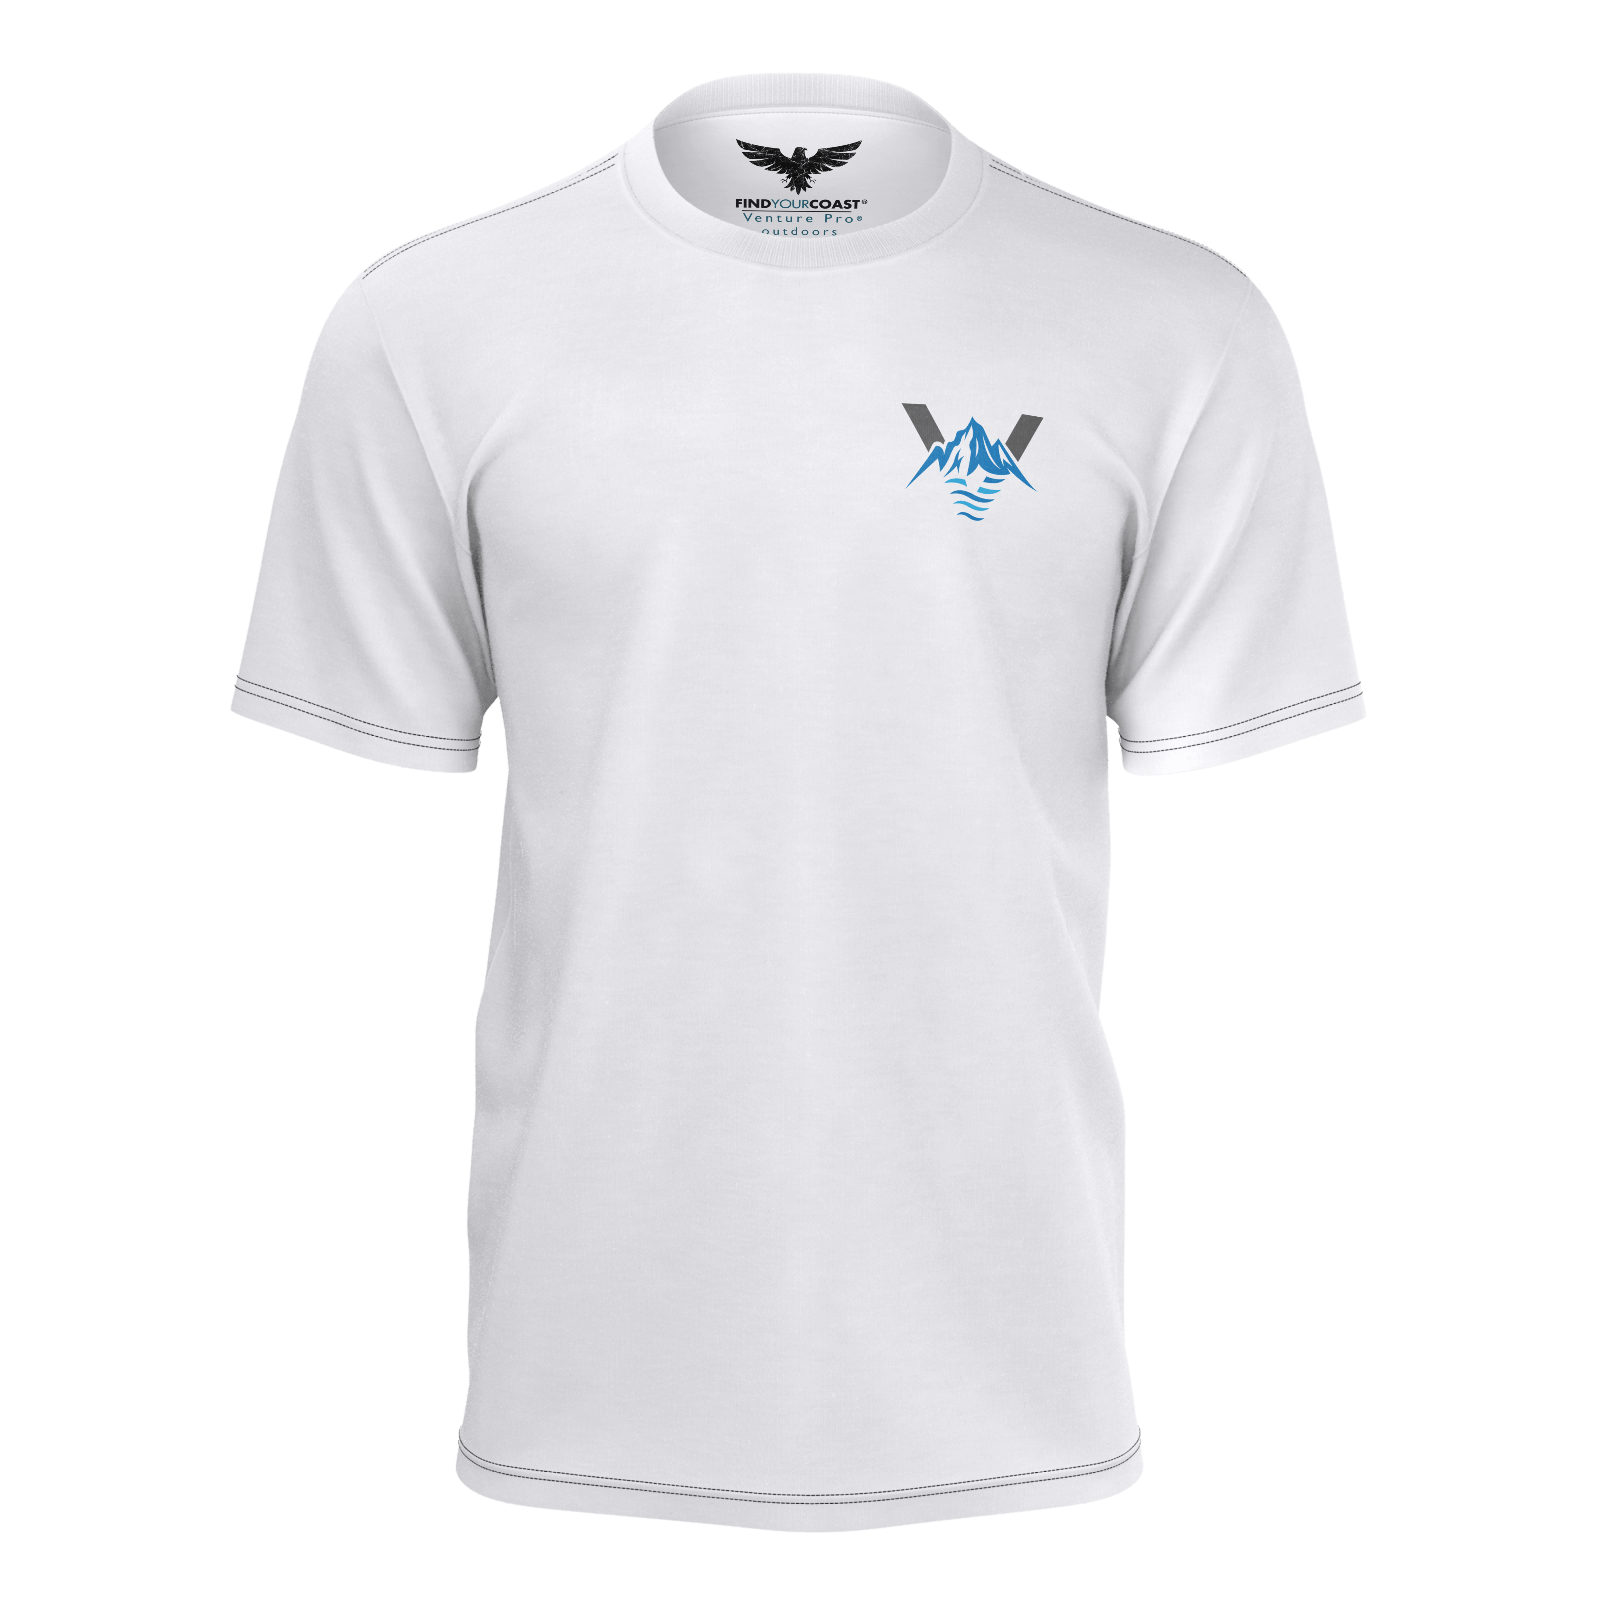 Men's FYC Our Outdoors Venture Pro Sustainable Short Sleeve Tee Shirt - Find Your Coast Supply Co.